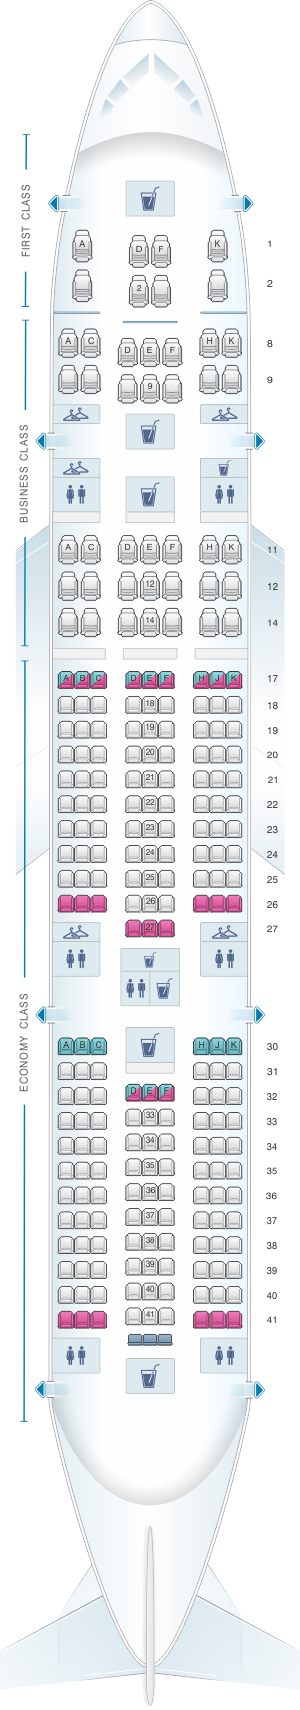 Seat map for Air India Boeing B777 200LR